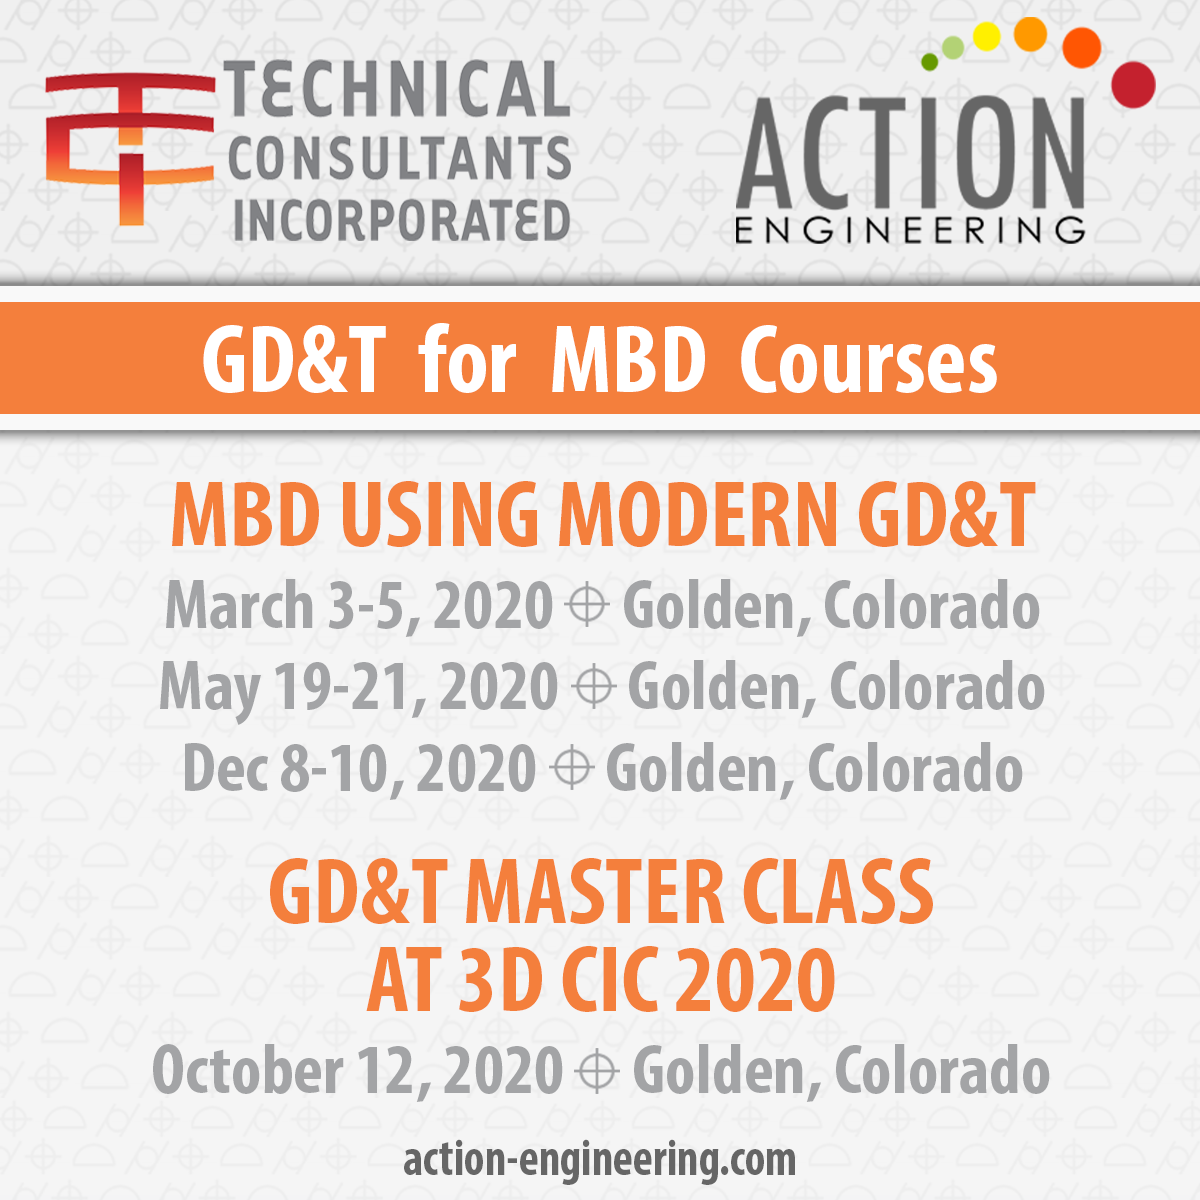 3 MBD Using Modern GD&T Courses for 2020 in Golden, Colorado